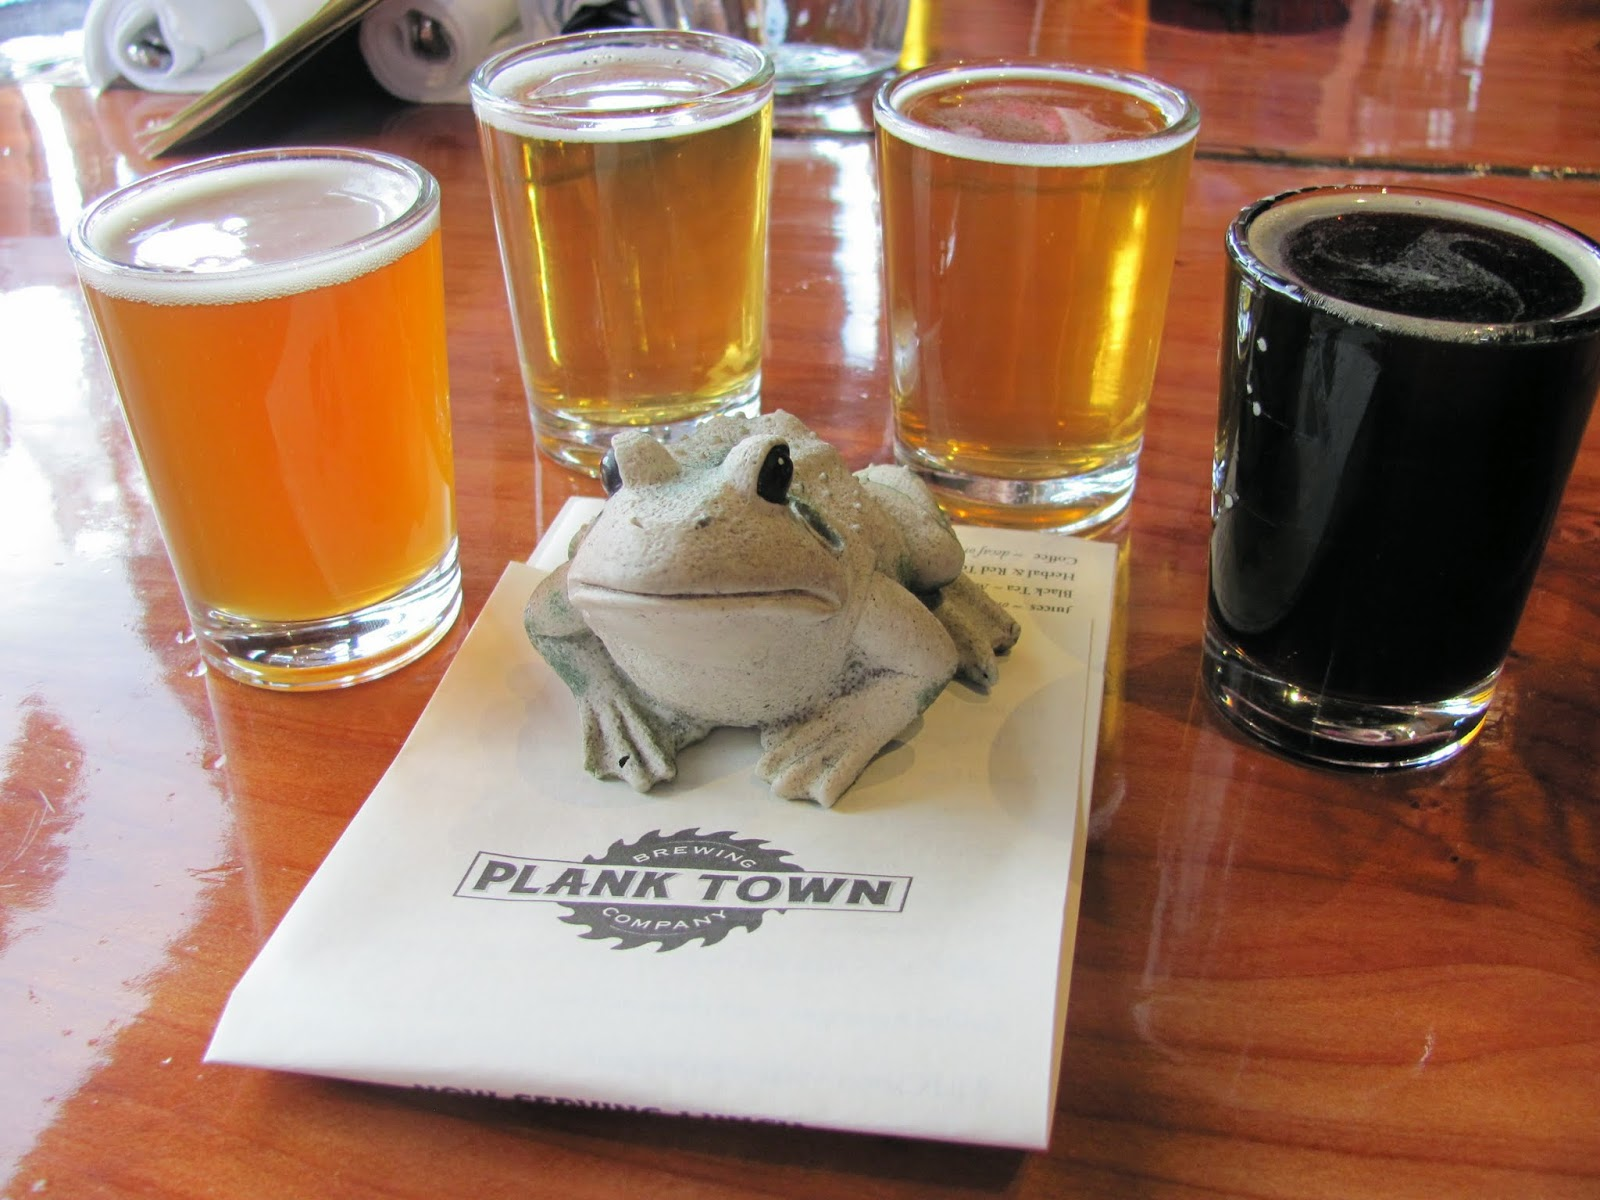 Frog poses with the flight of beverages at Plank Town Brewery in Springfield, Oregon